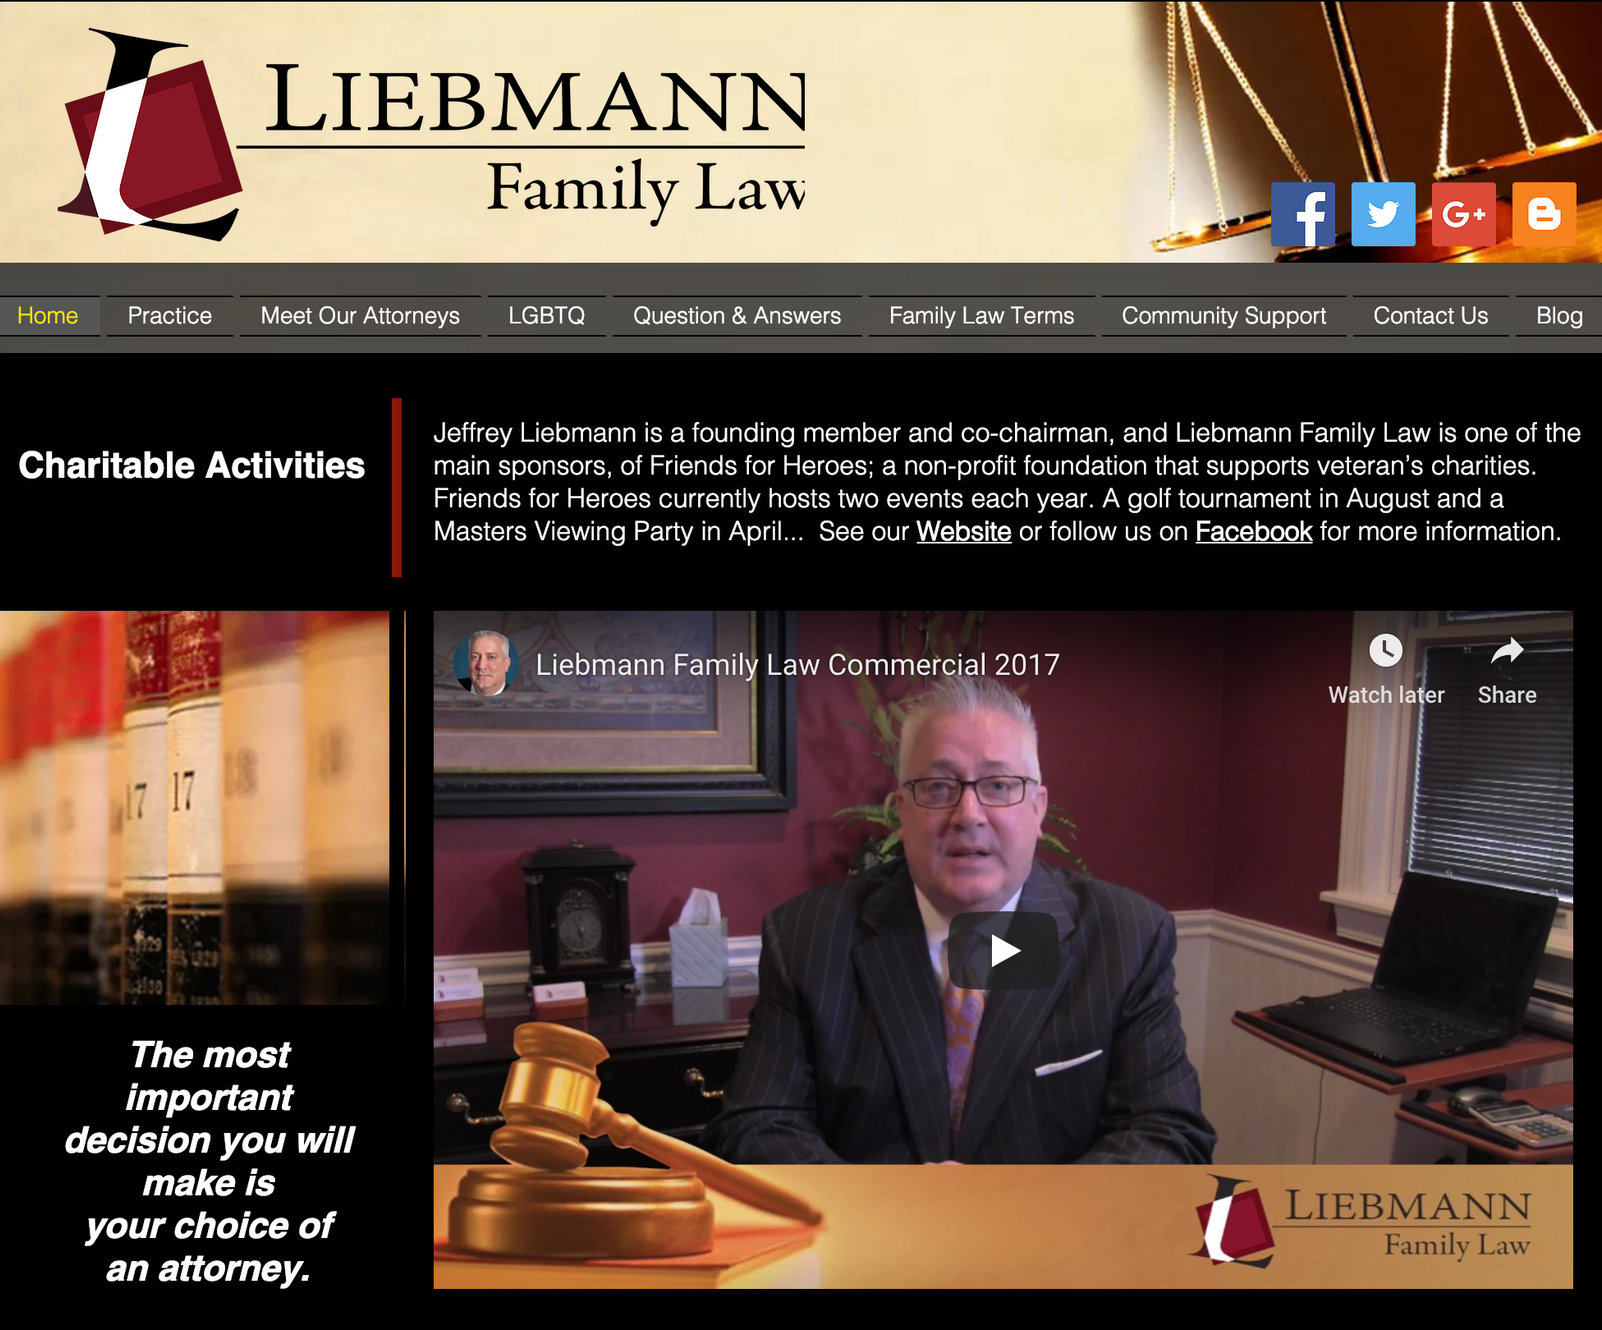 Liebmann Family Law, Located In Newtown PA - Family Law Terms